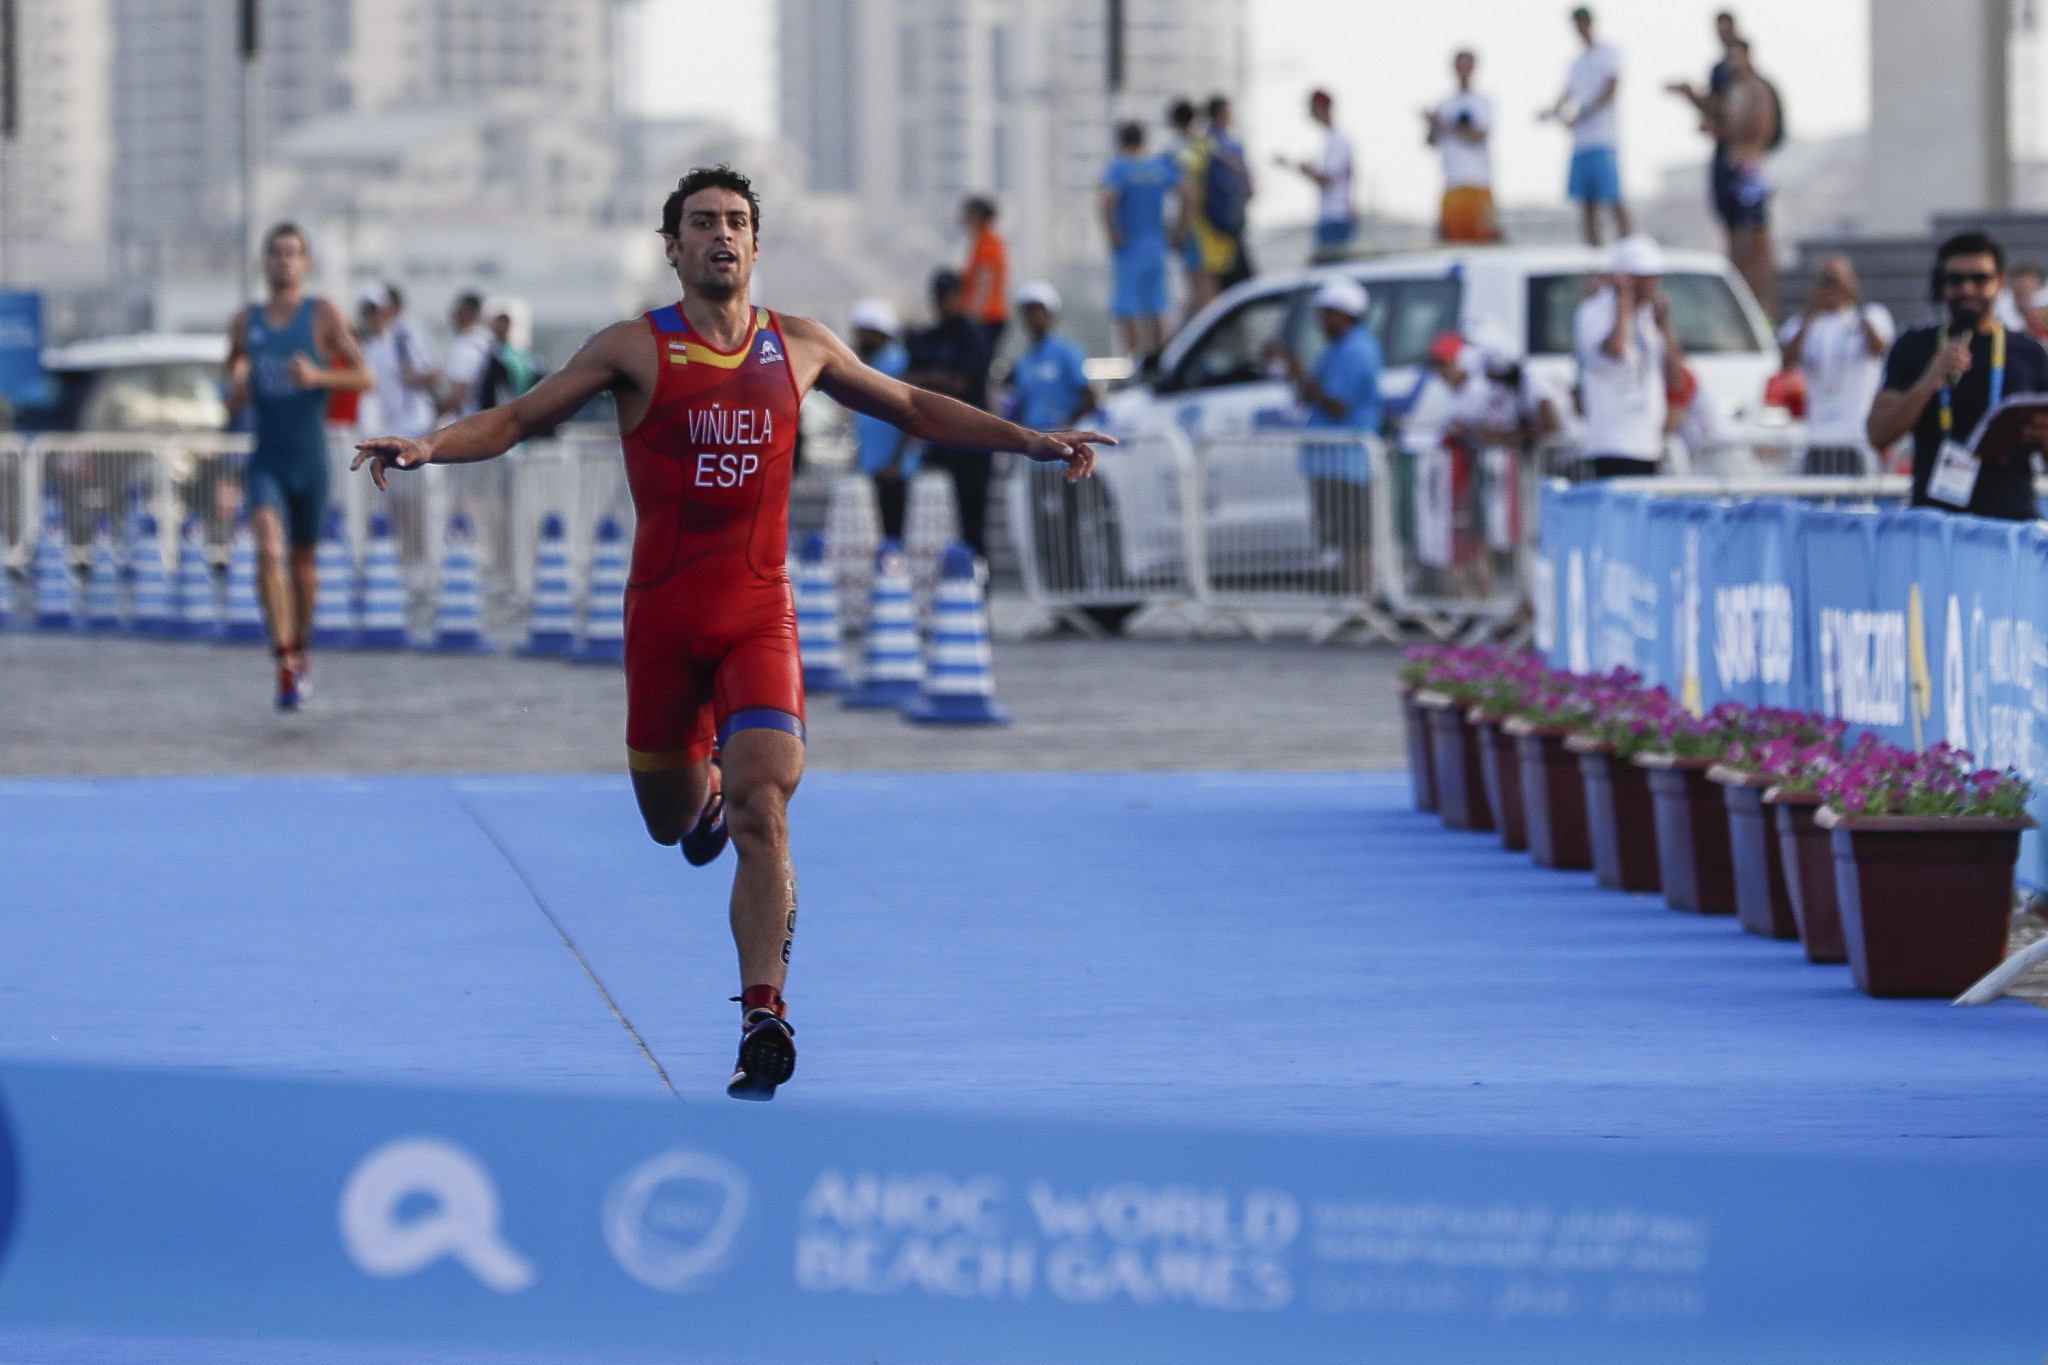 Kevin Vinuela won the men's race for Spain ©ANOC